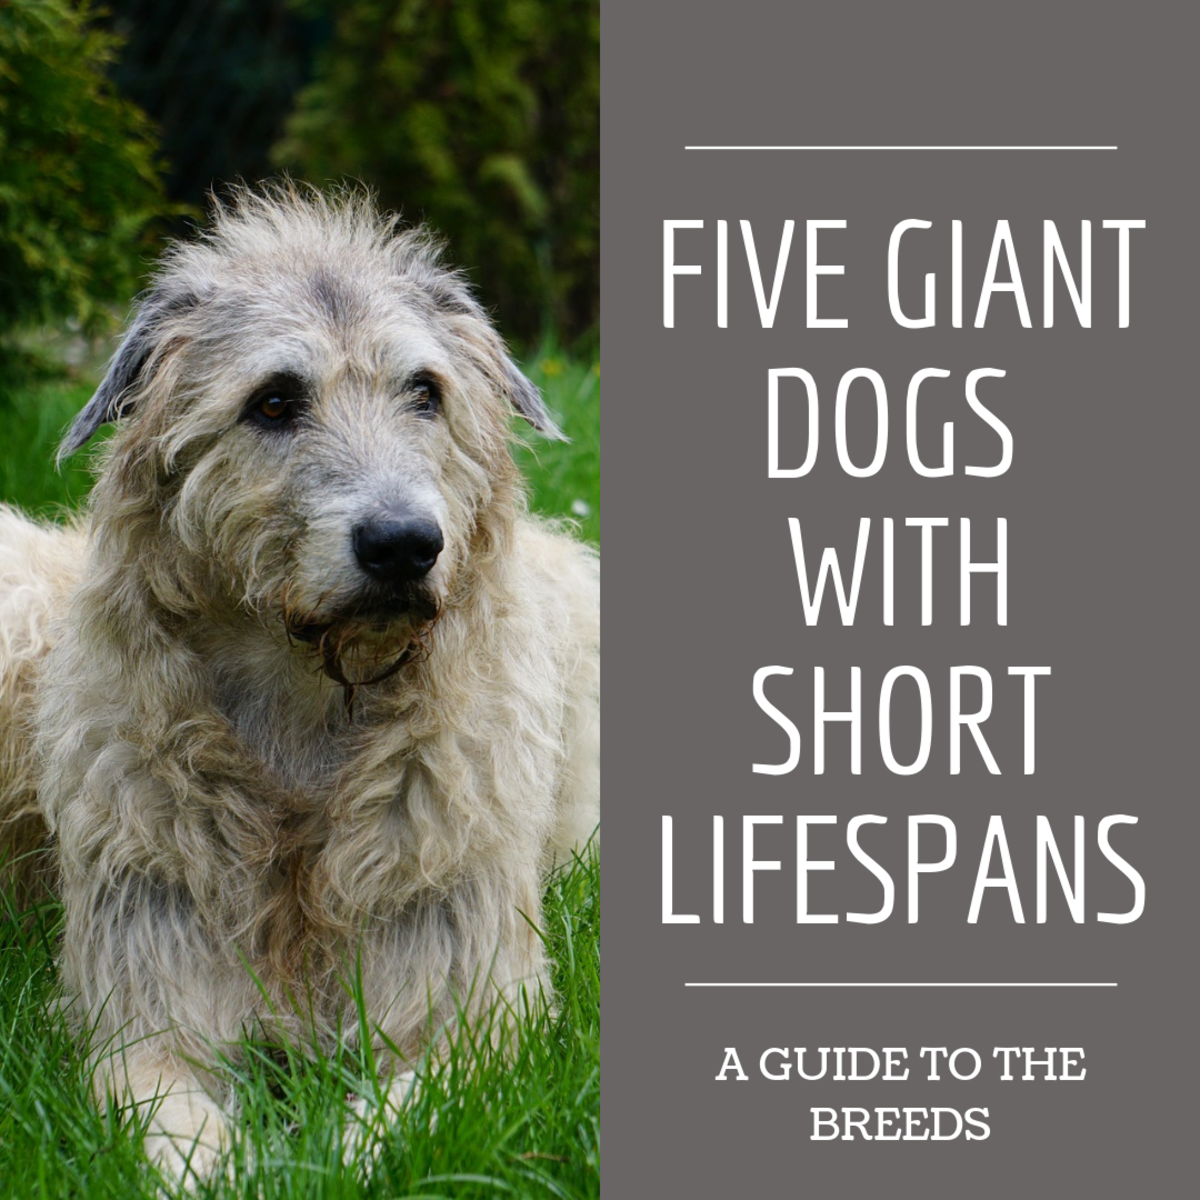 Five Giant Dog Breeds With Short Lifespans